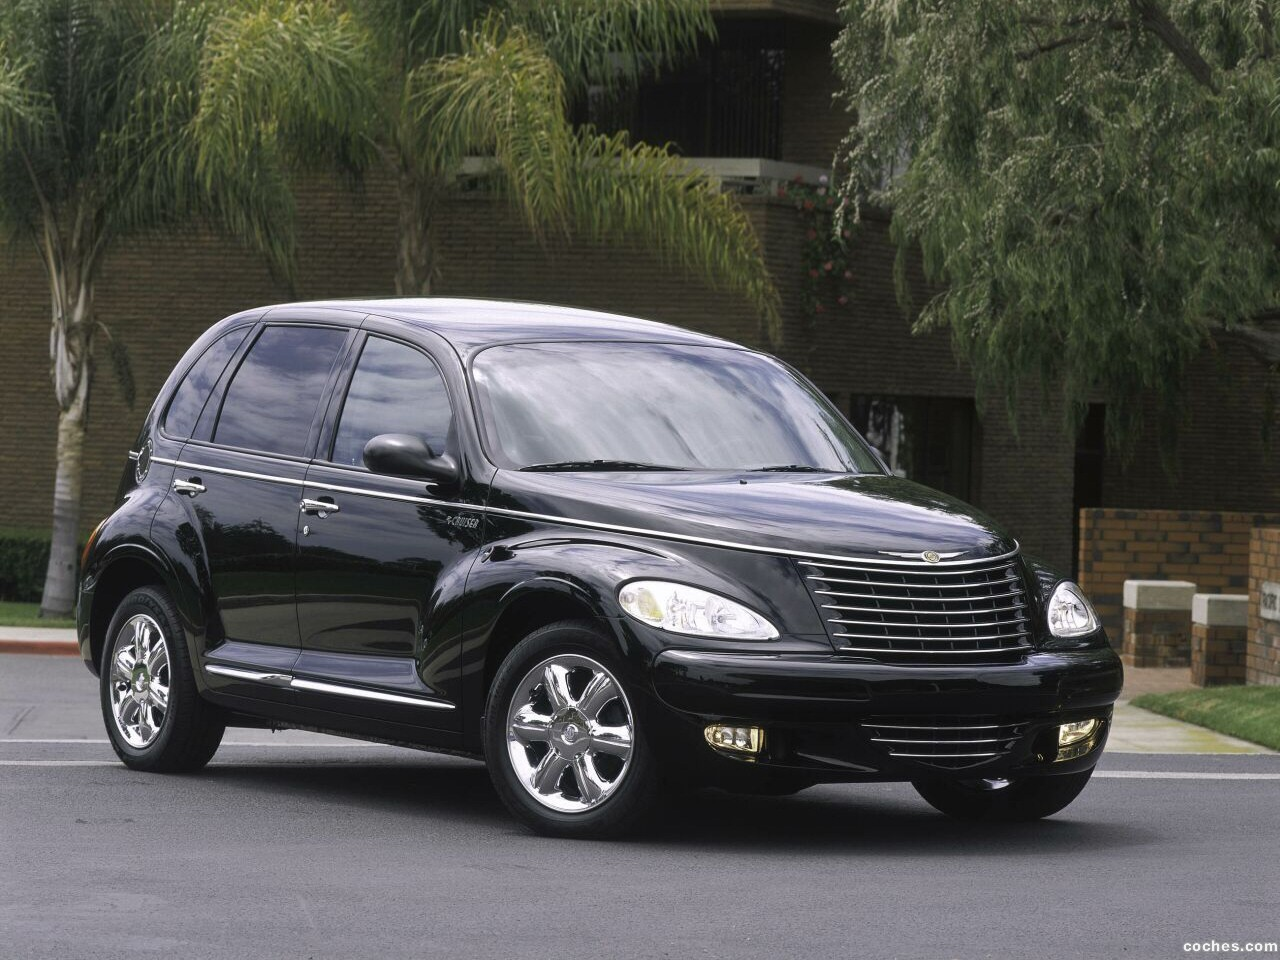 Foto 0 de Chrysler PT Cruiser 2001